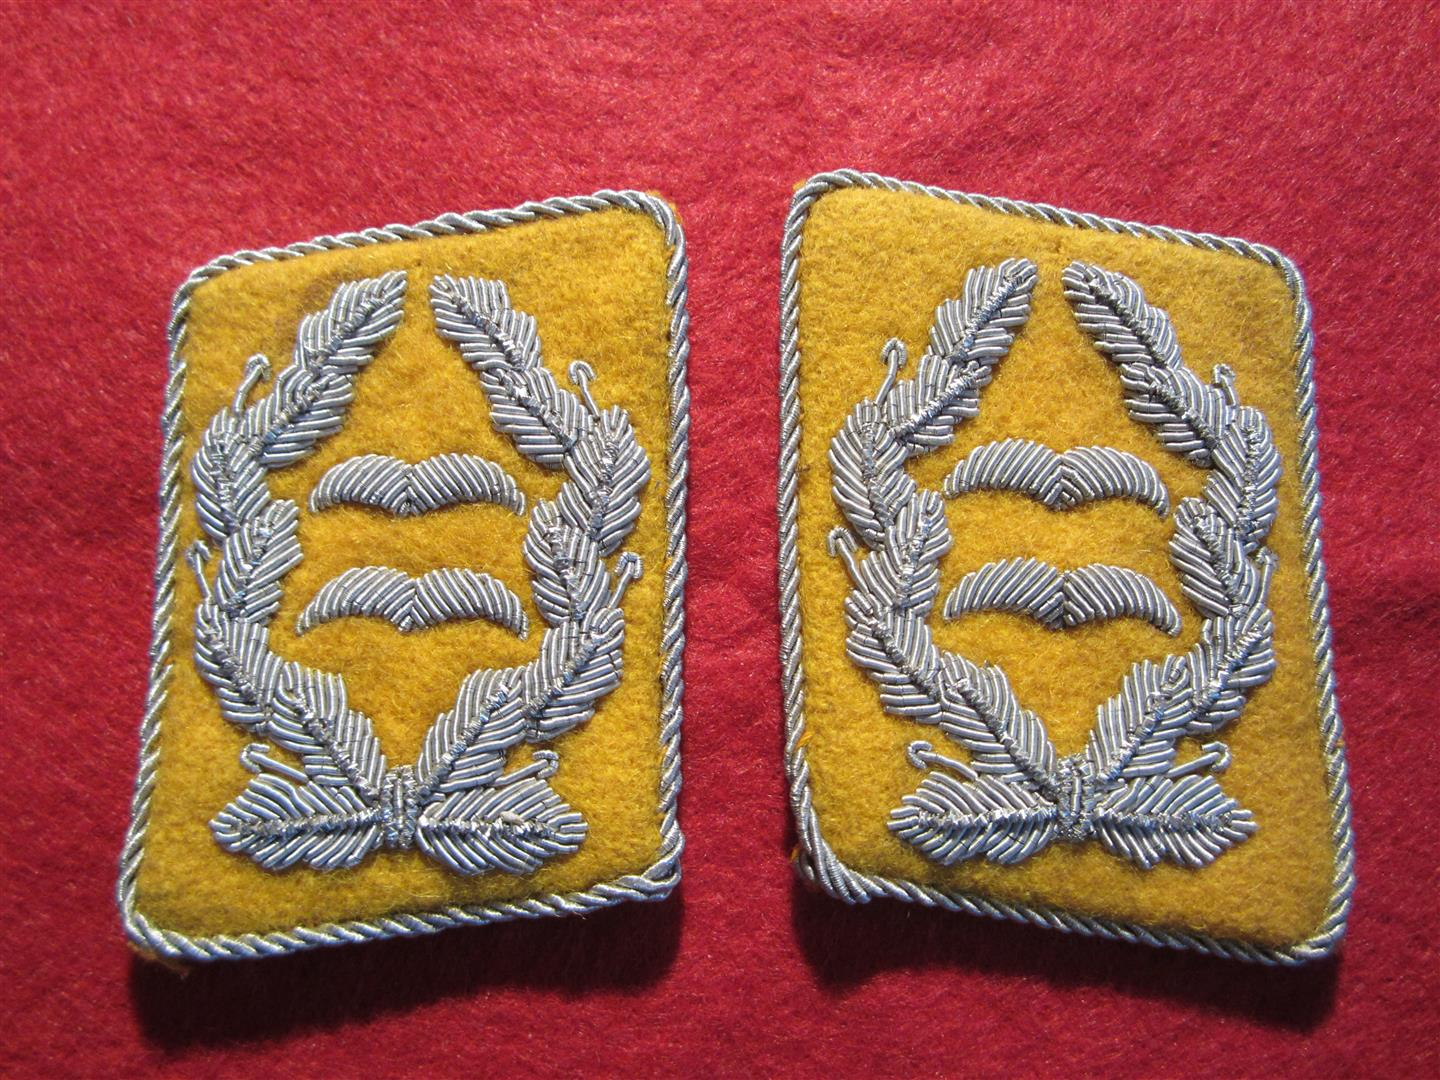 WW2 German WL Oberstleutnant Collar Patches